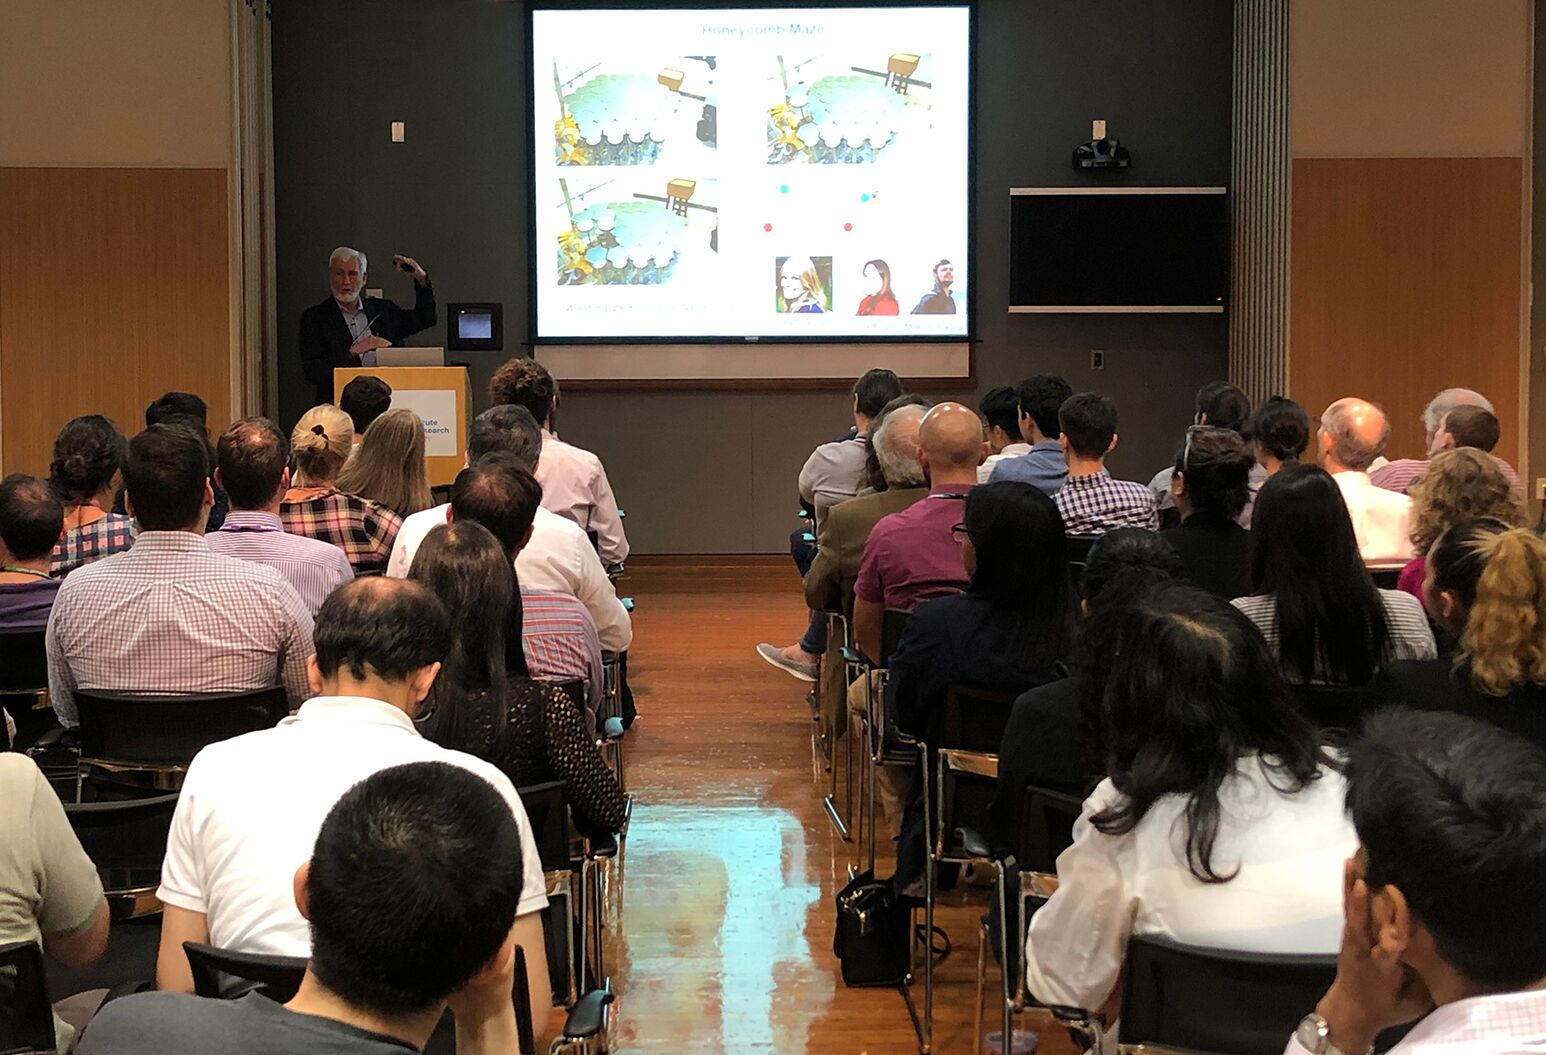 2014 Nobel Laureate in Physiology or Medicine John O'Keefe, MA, PhD, speaks at the Feinstein Institutes for Medical Research.